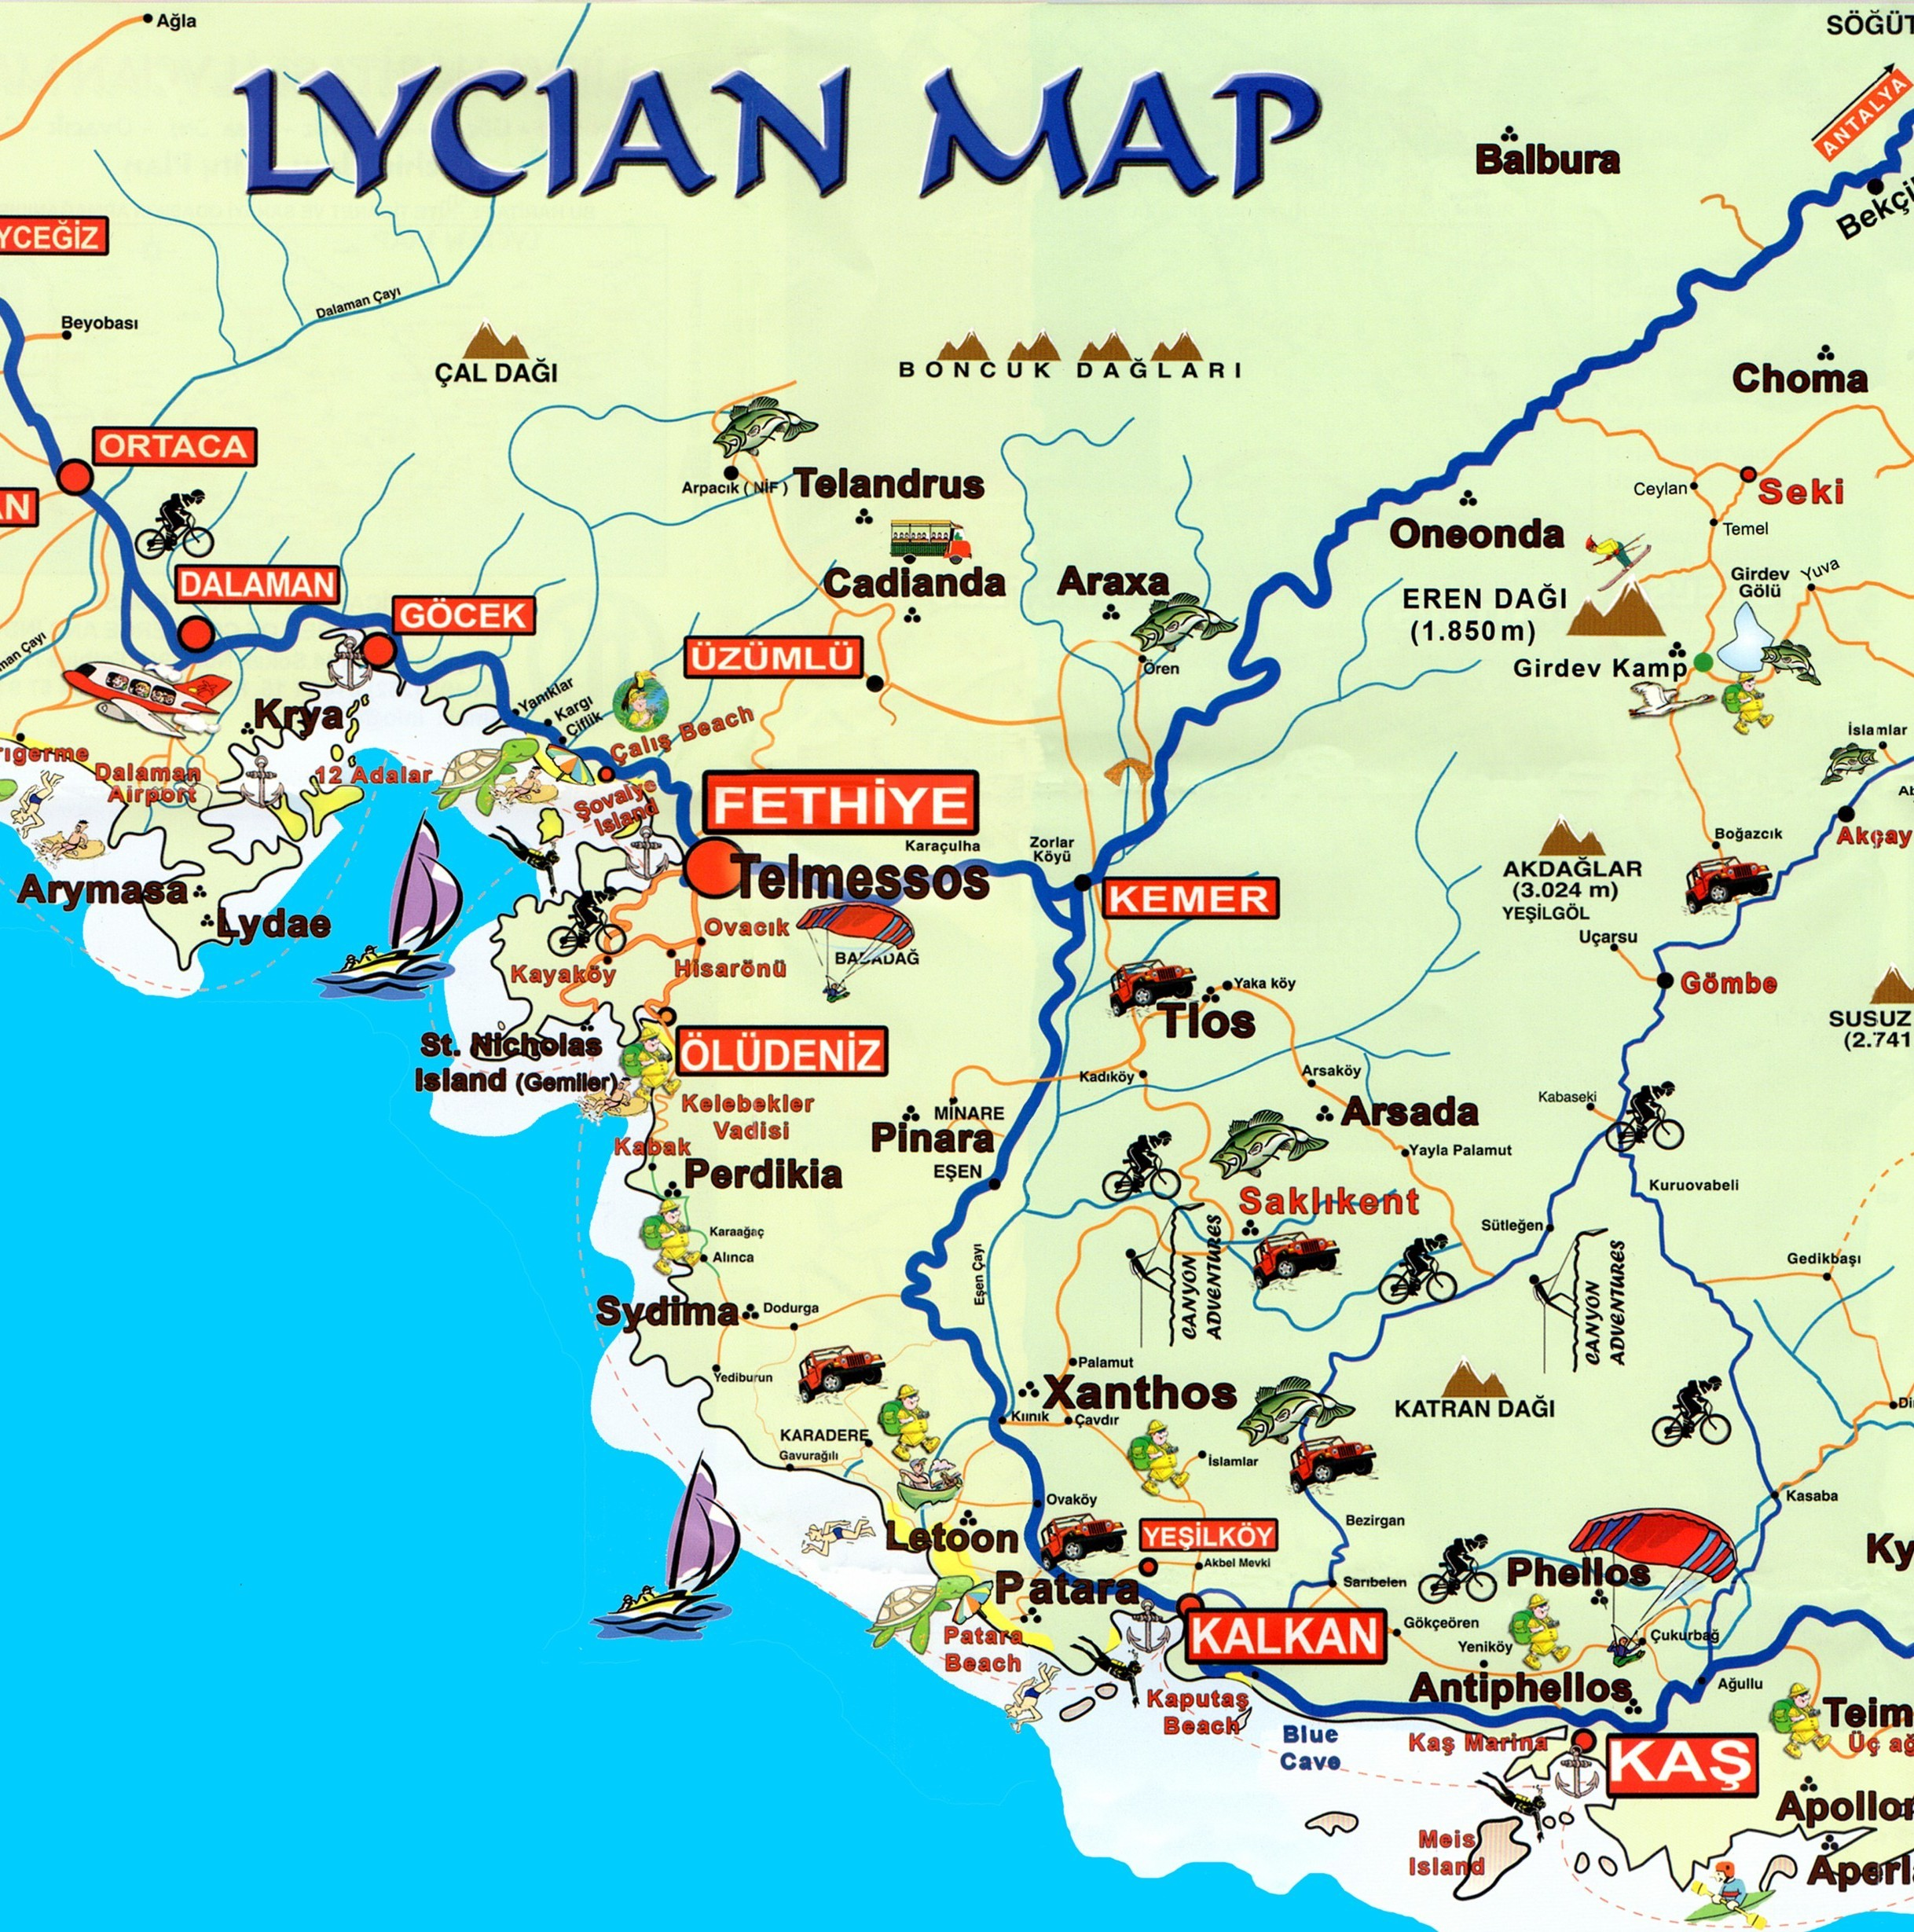 Map if The Lycian Way